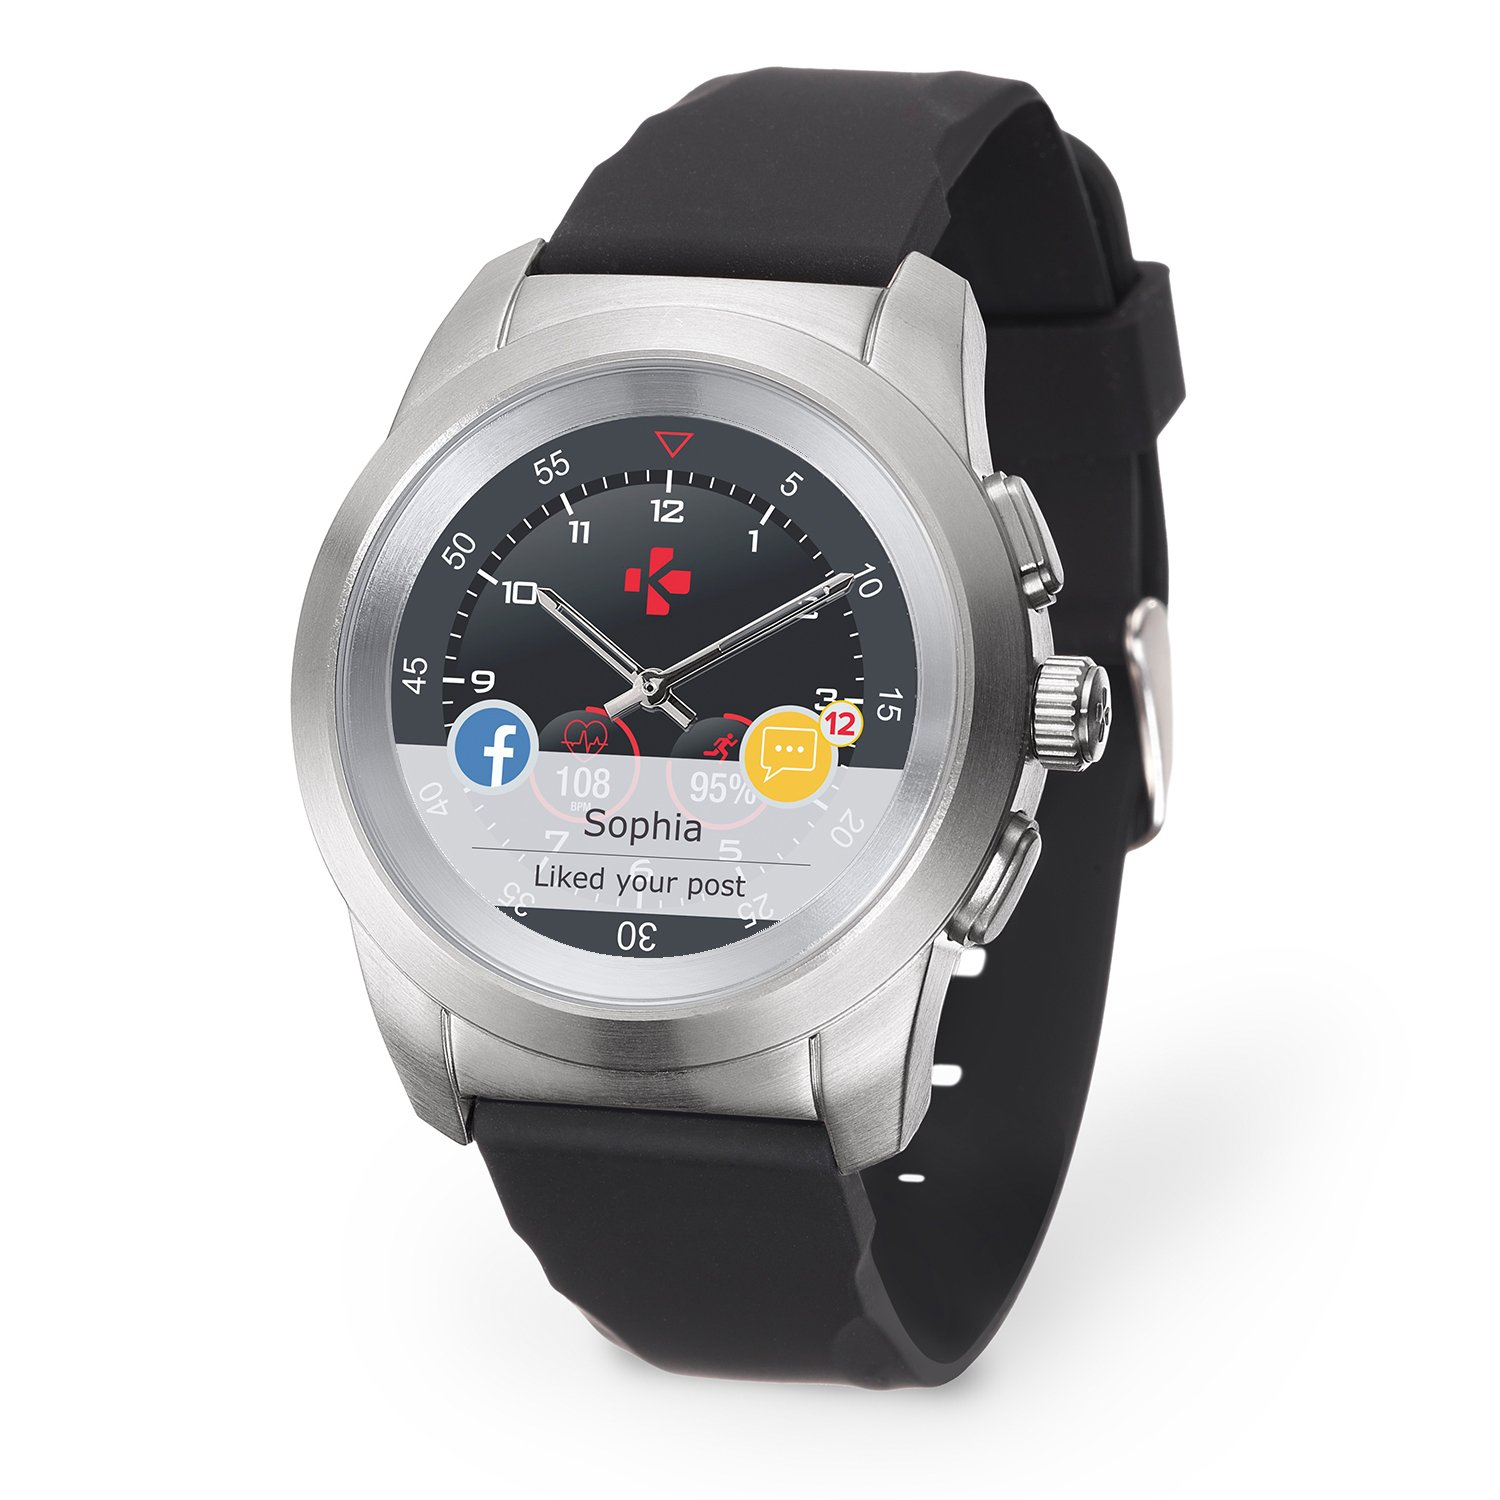 MyKronoz ZeTime Original Hybrid Smartwatch with mechanical hands over a color touch screen – Regular Brushed Silver / Black Silicon Flat